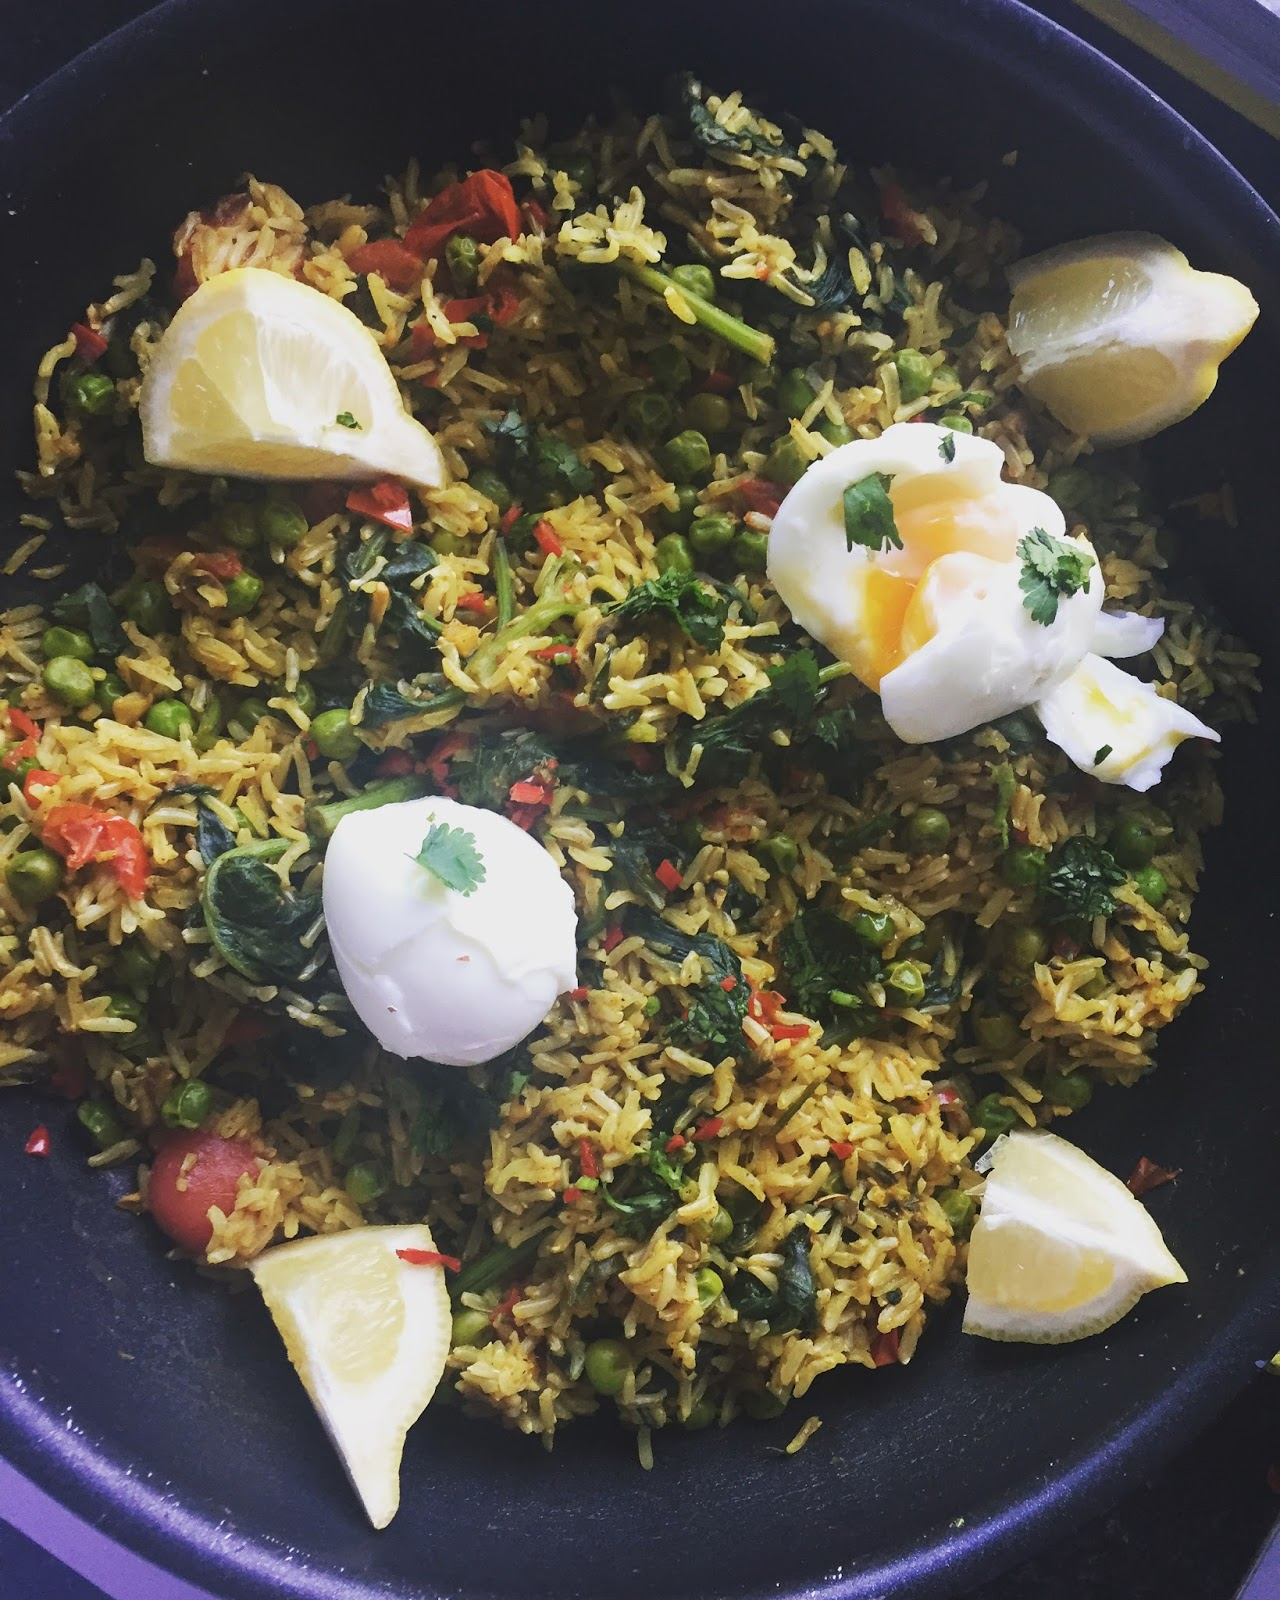 Yummy yummerson recipe jamie olivers vegeree not kedgeree in a bid to be a bit healthier i read jamie olivers book everyday super food its a nice book with interesting recipes and i love how he packs so much forumfinder Choice Image